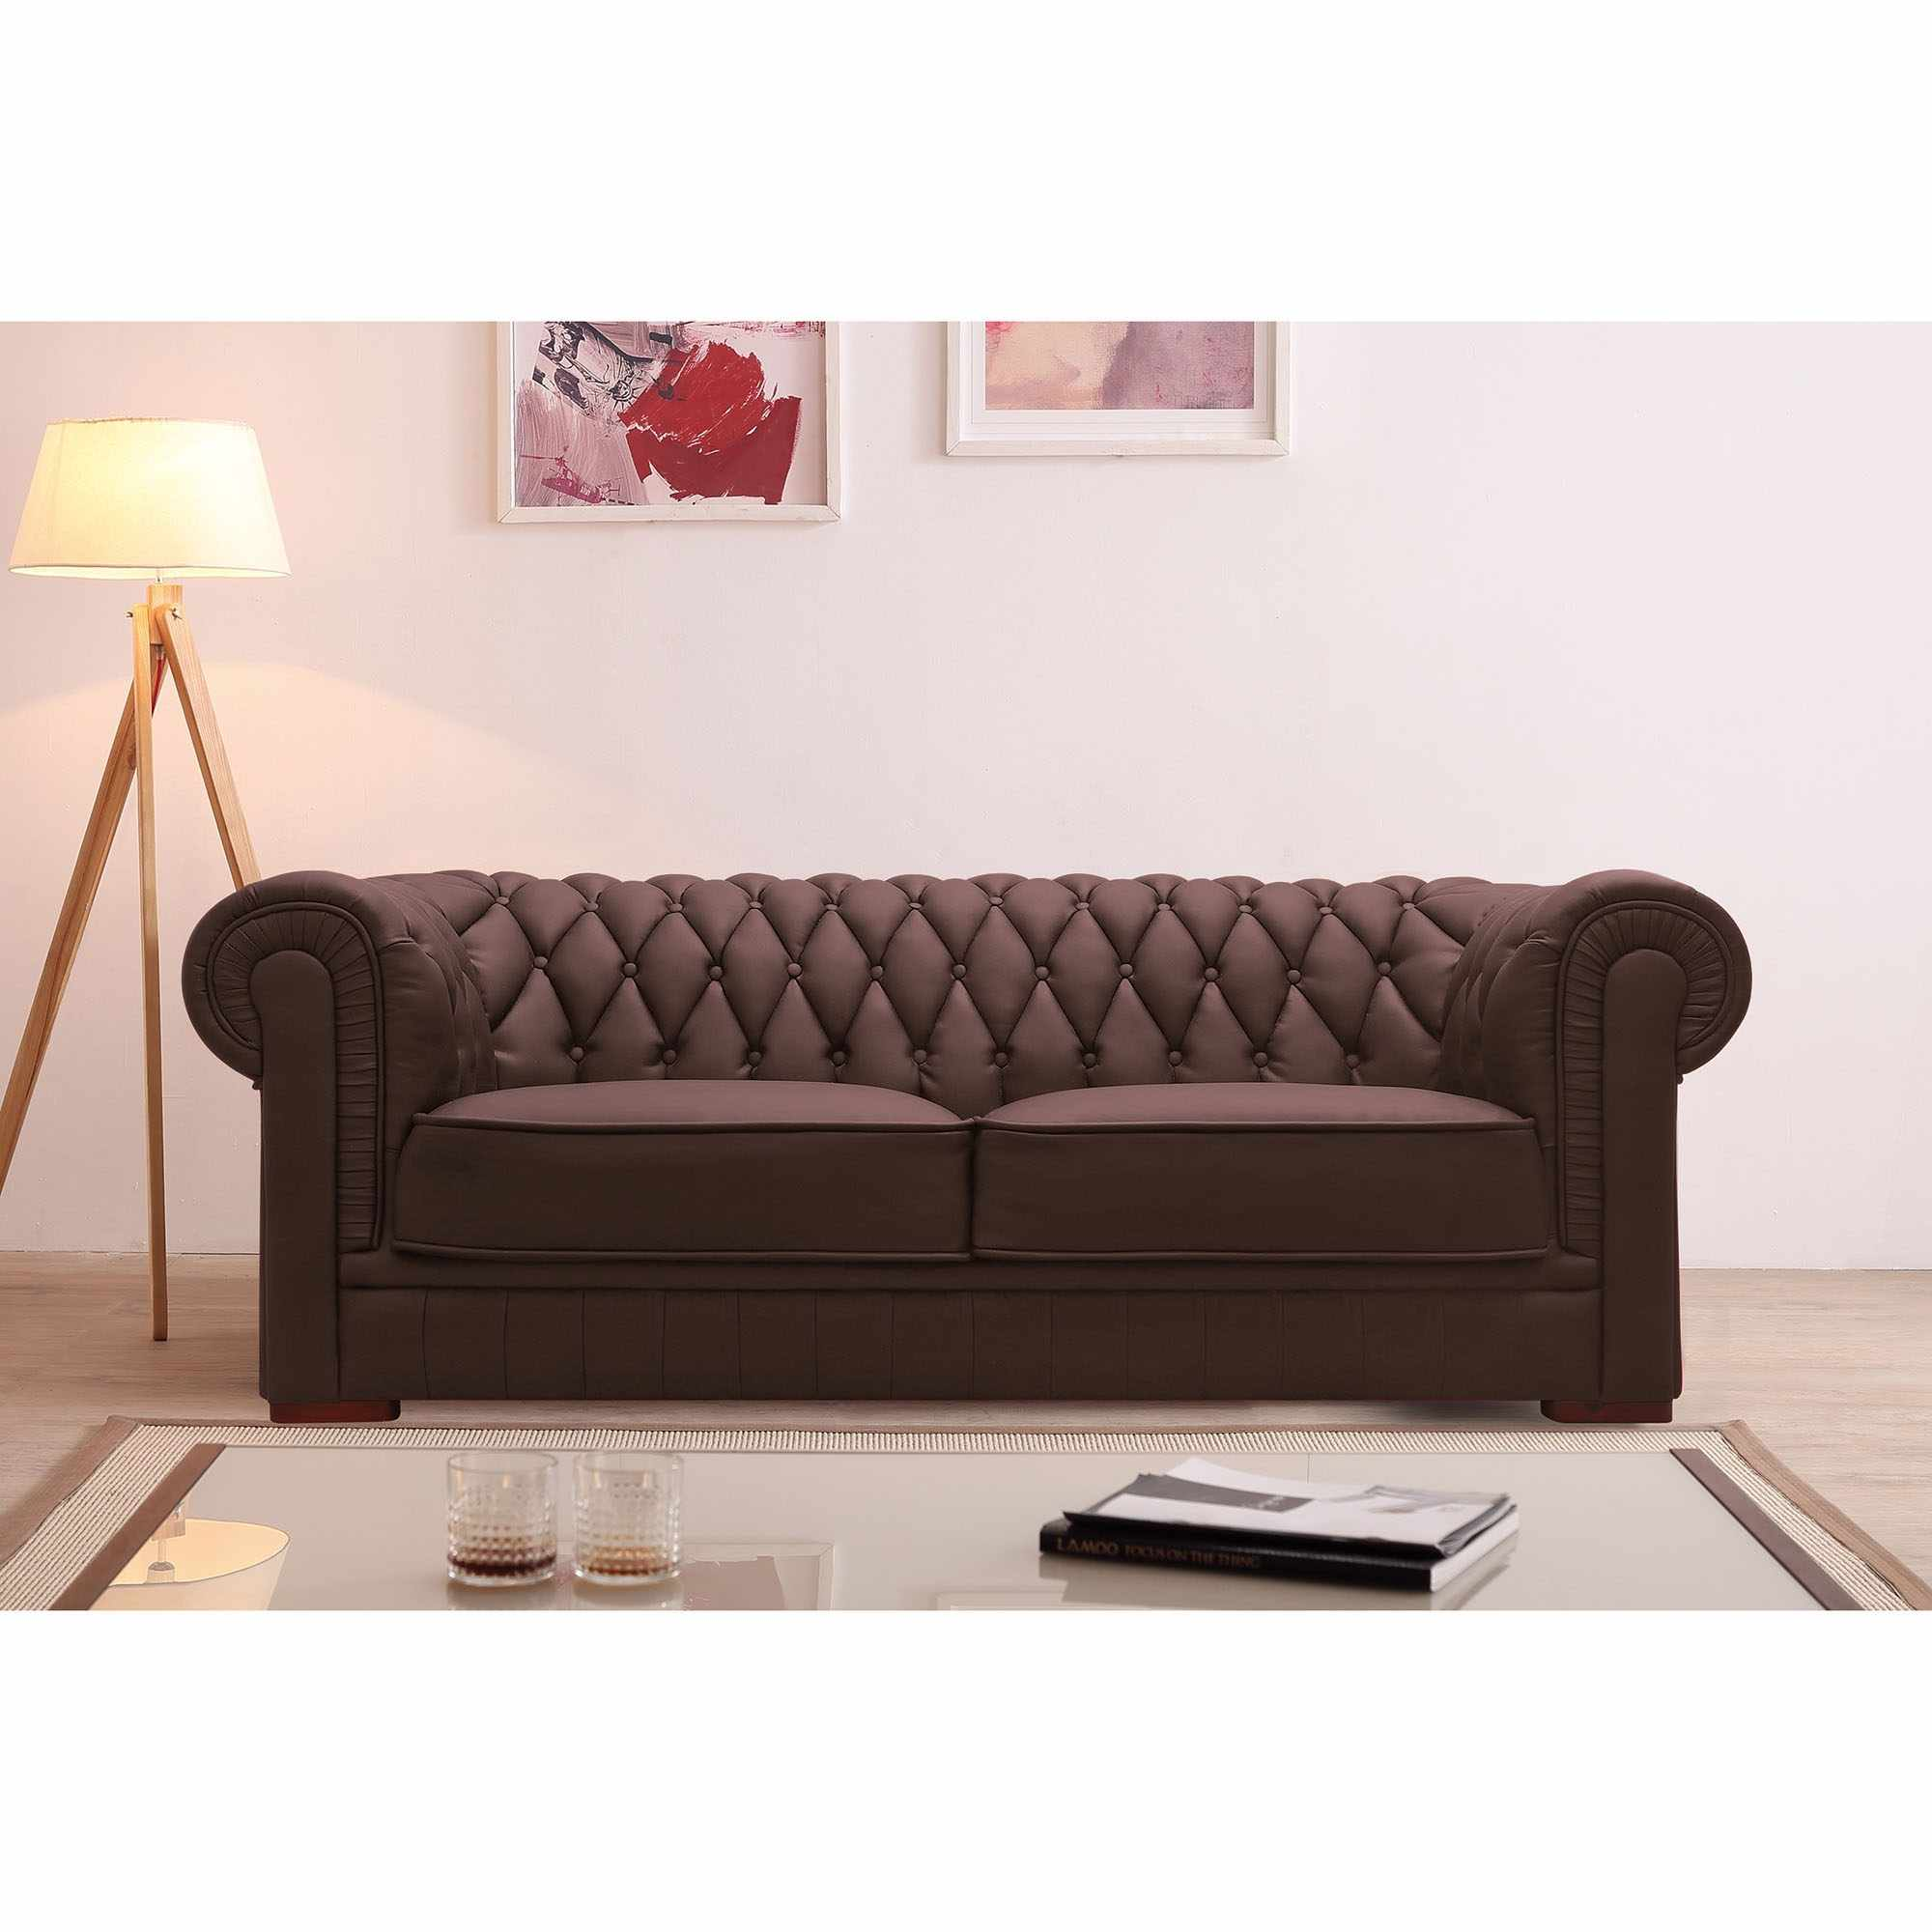 Canapé capitonné 3 places en cuir marron CHESTERFIELD